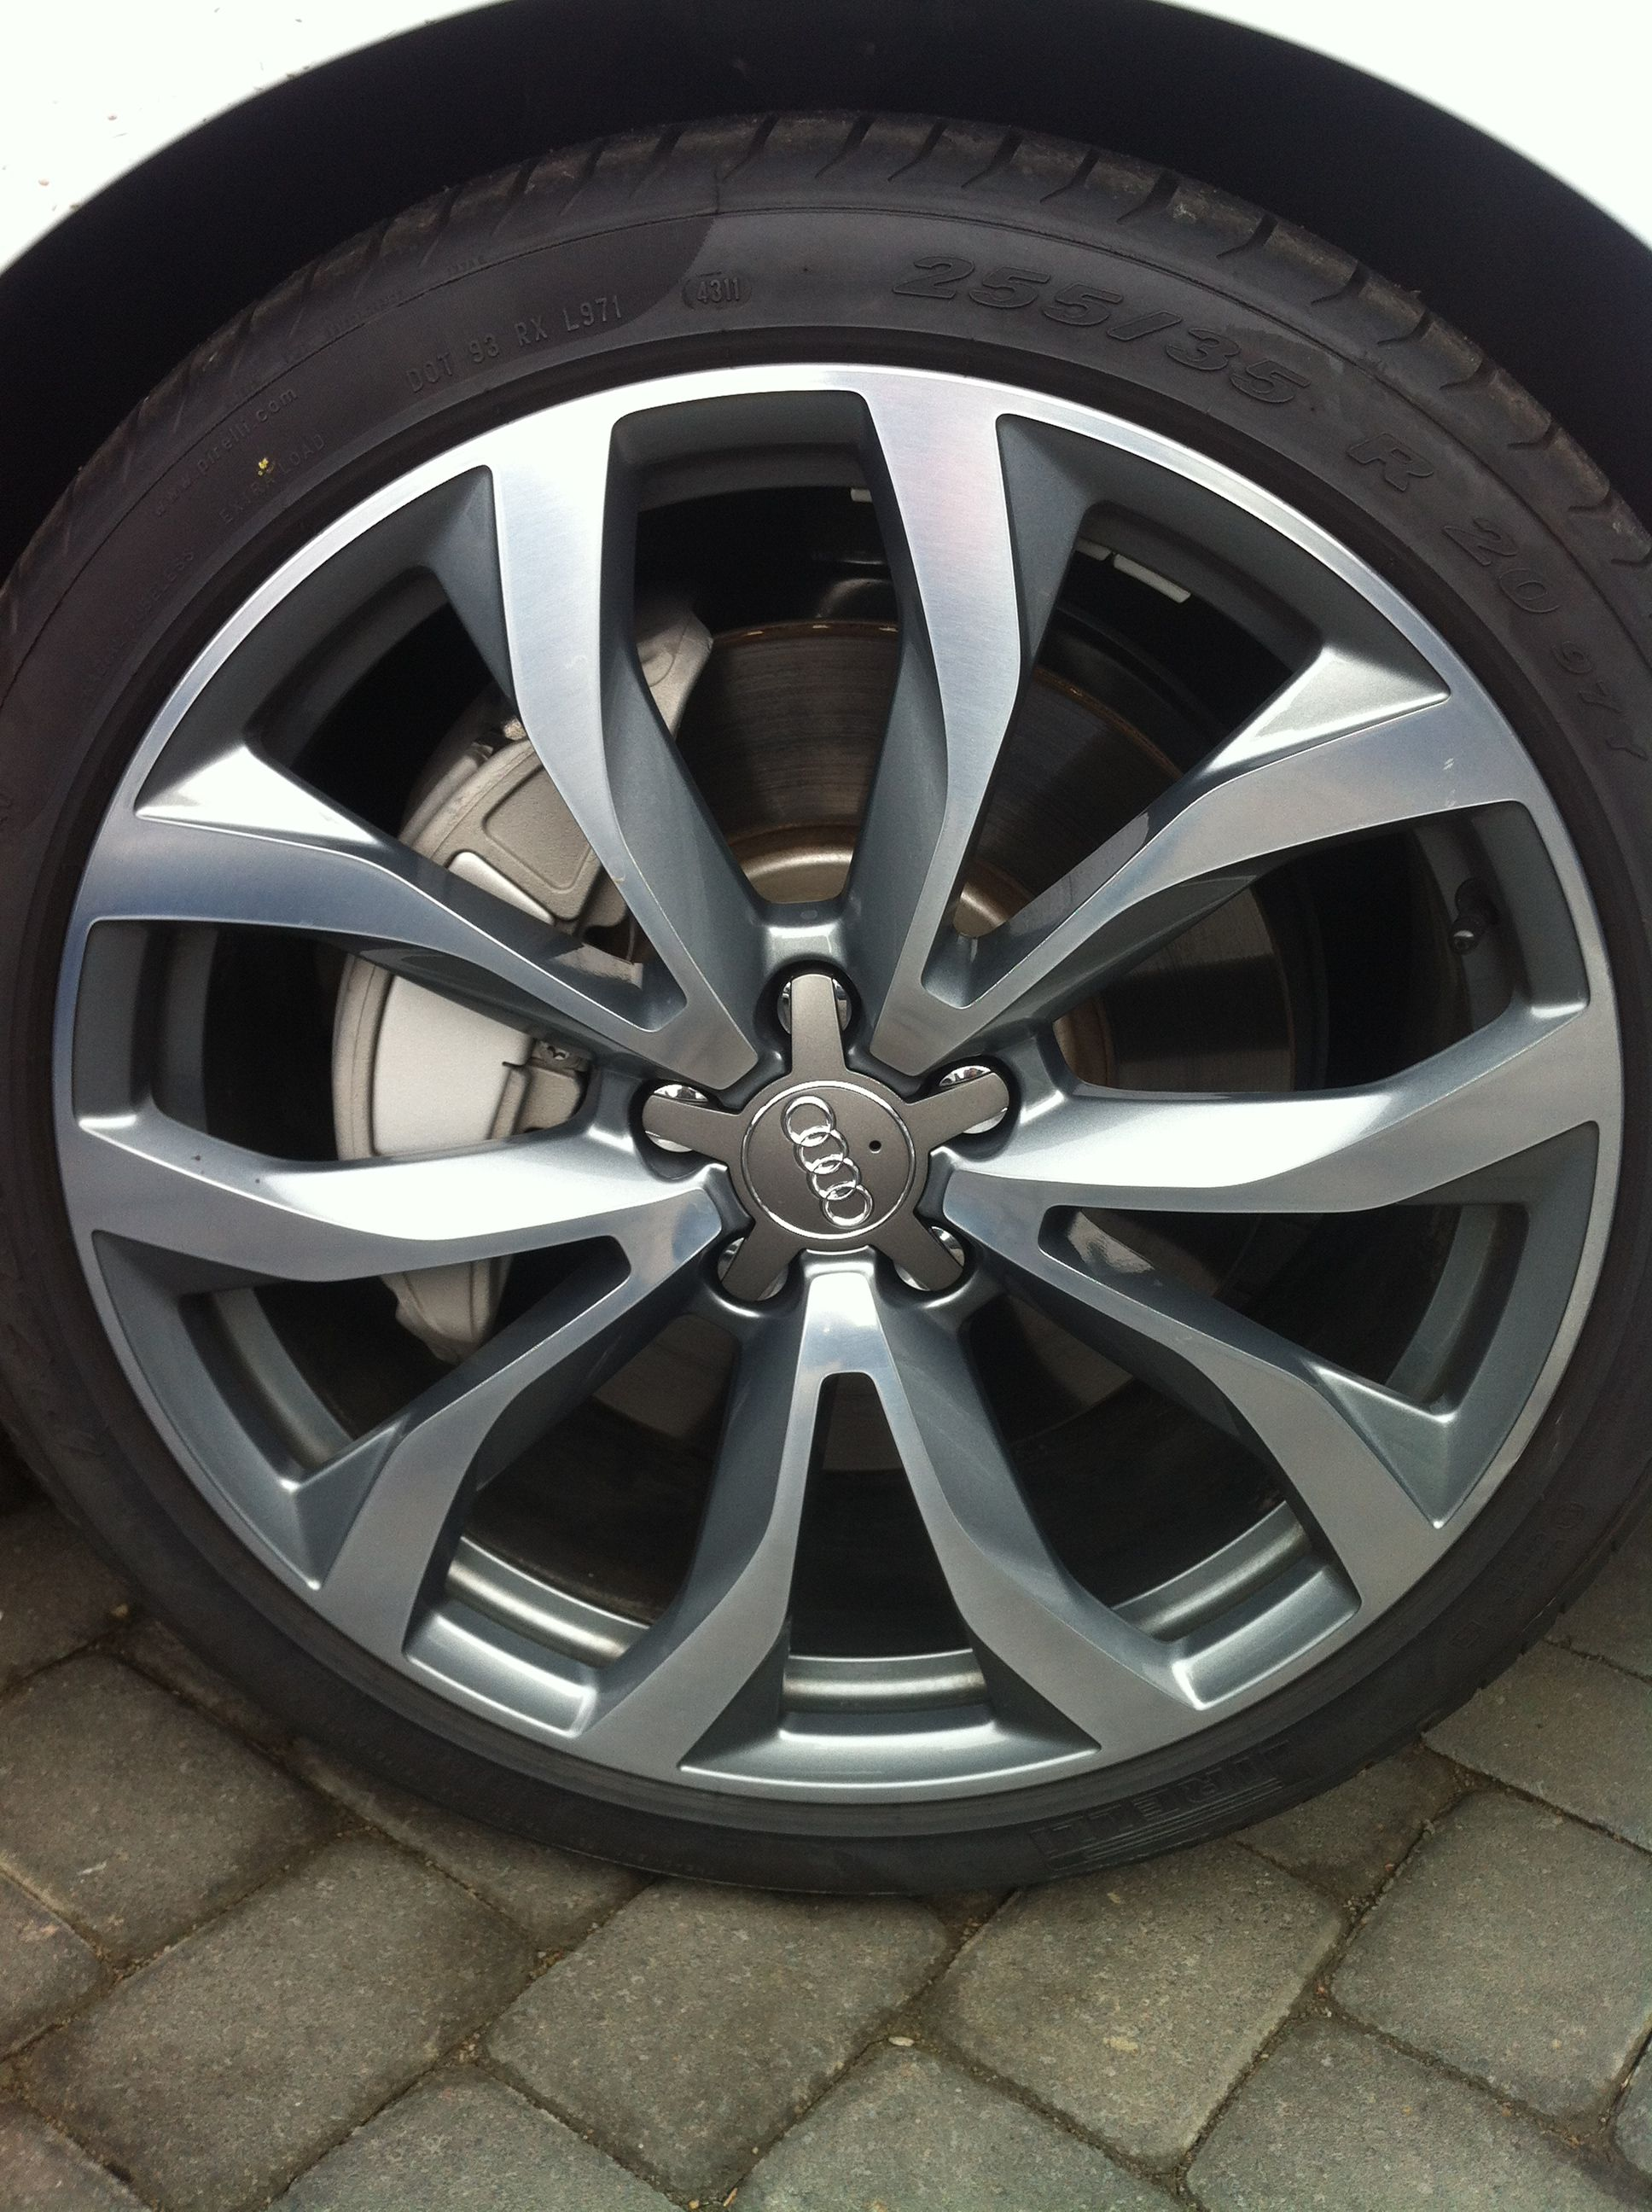 ny wheels com audi showthread vwvortex oem